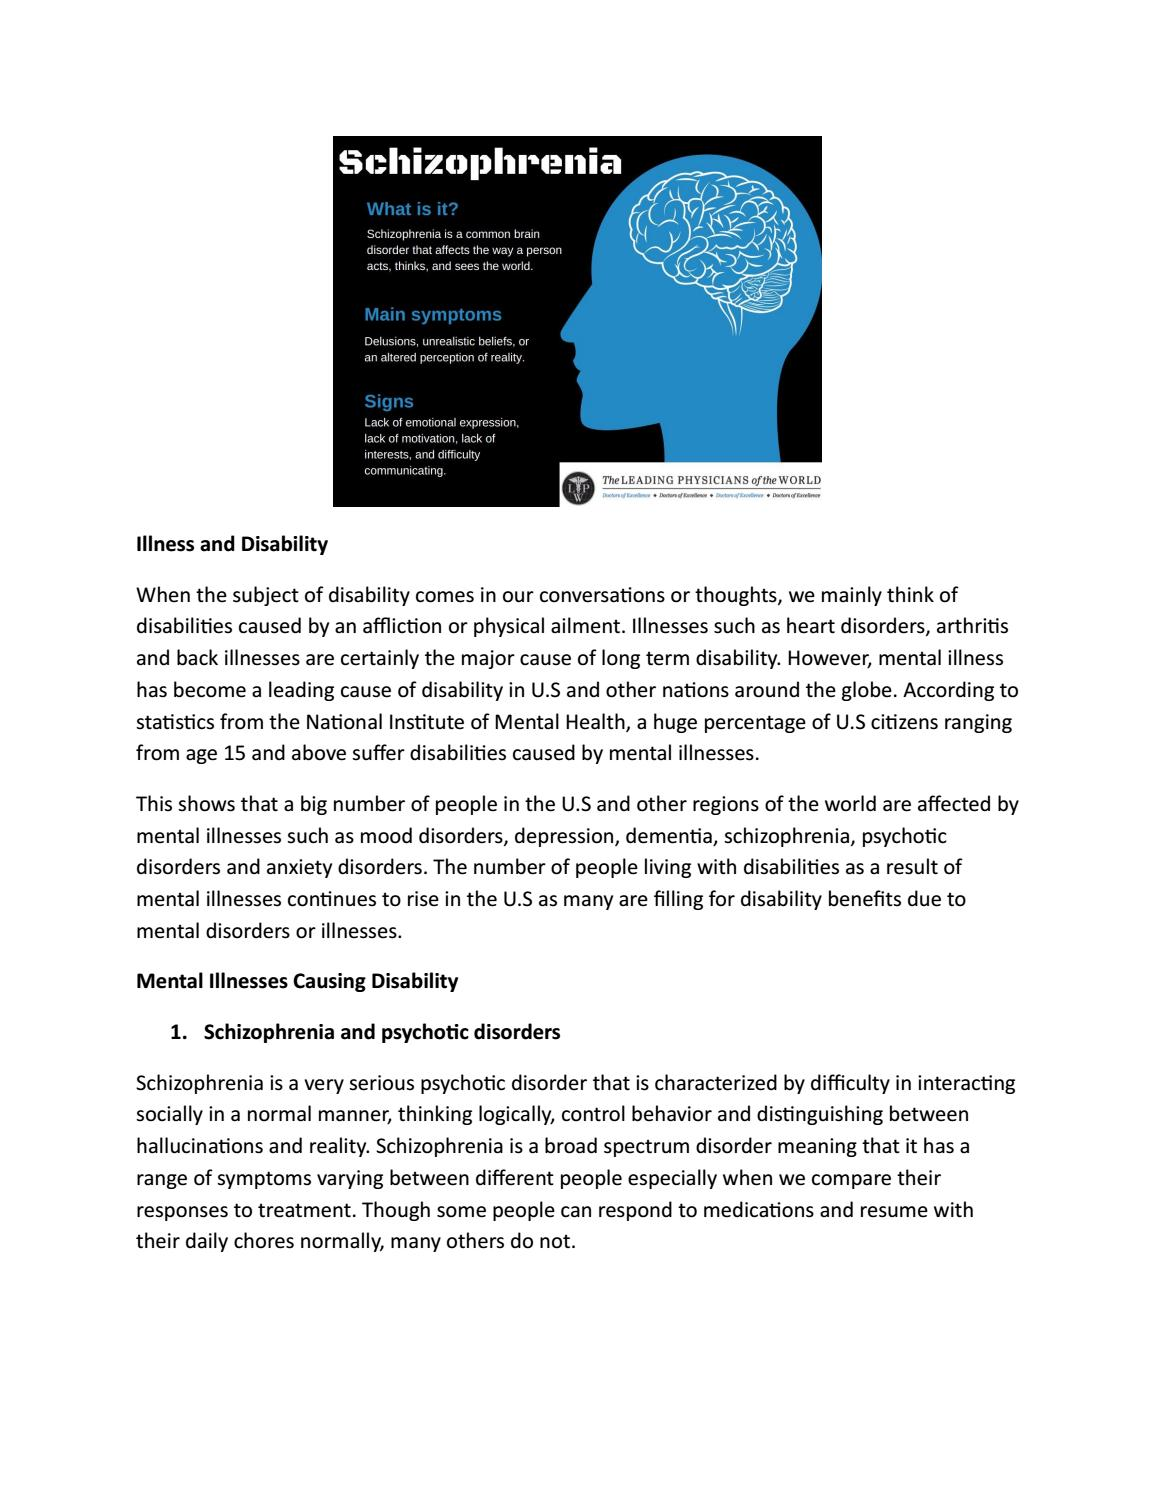 Illness and disability by leadingphysicianofworld - issuu